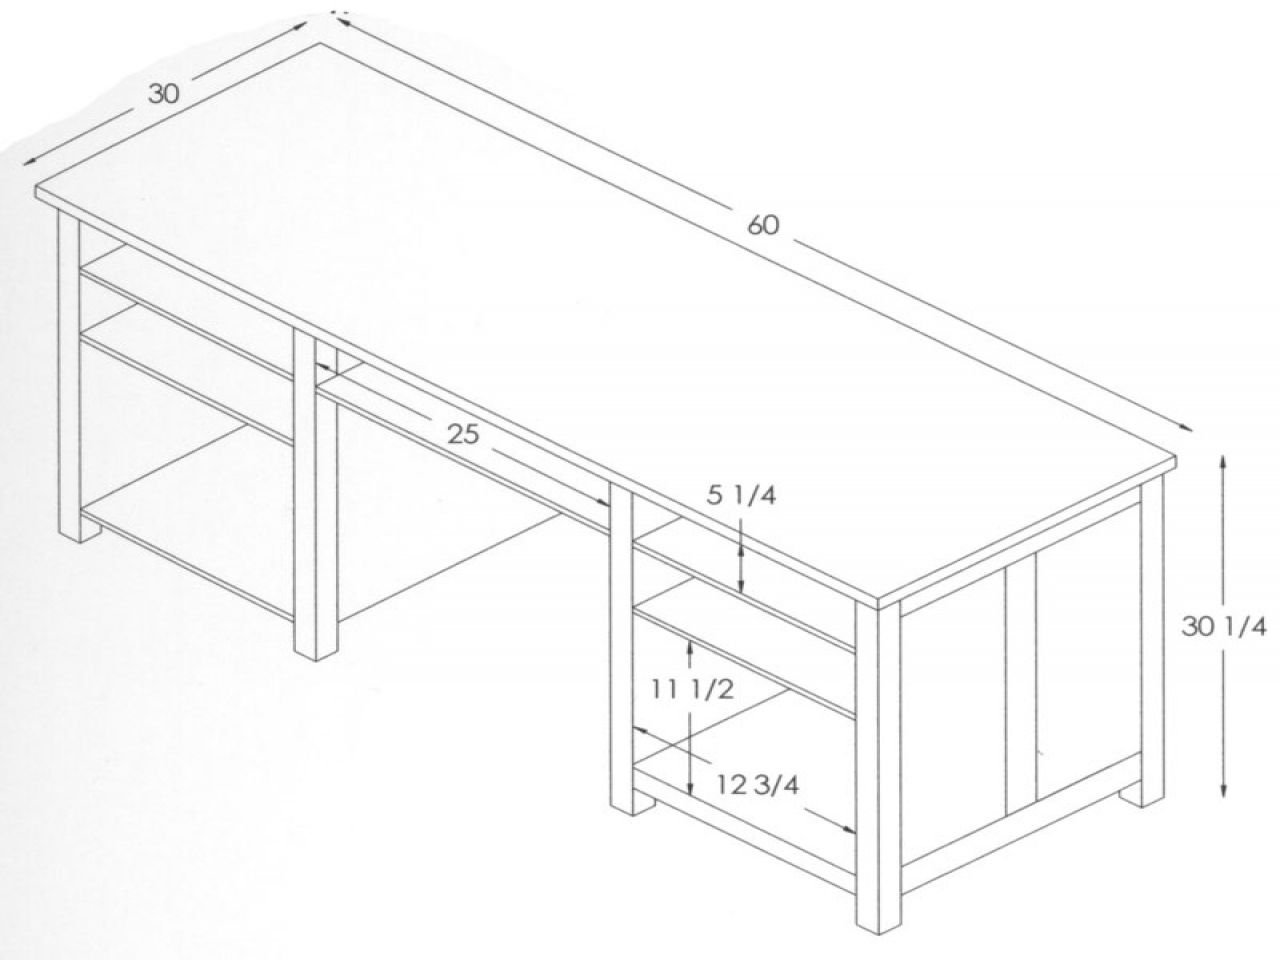 Superior Standard Office Desk Dimensions   Best Home Office Furniture Check More At  Http://